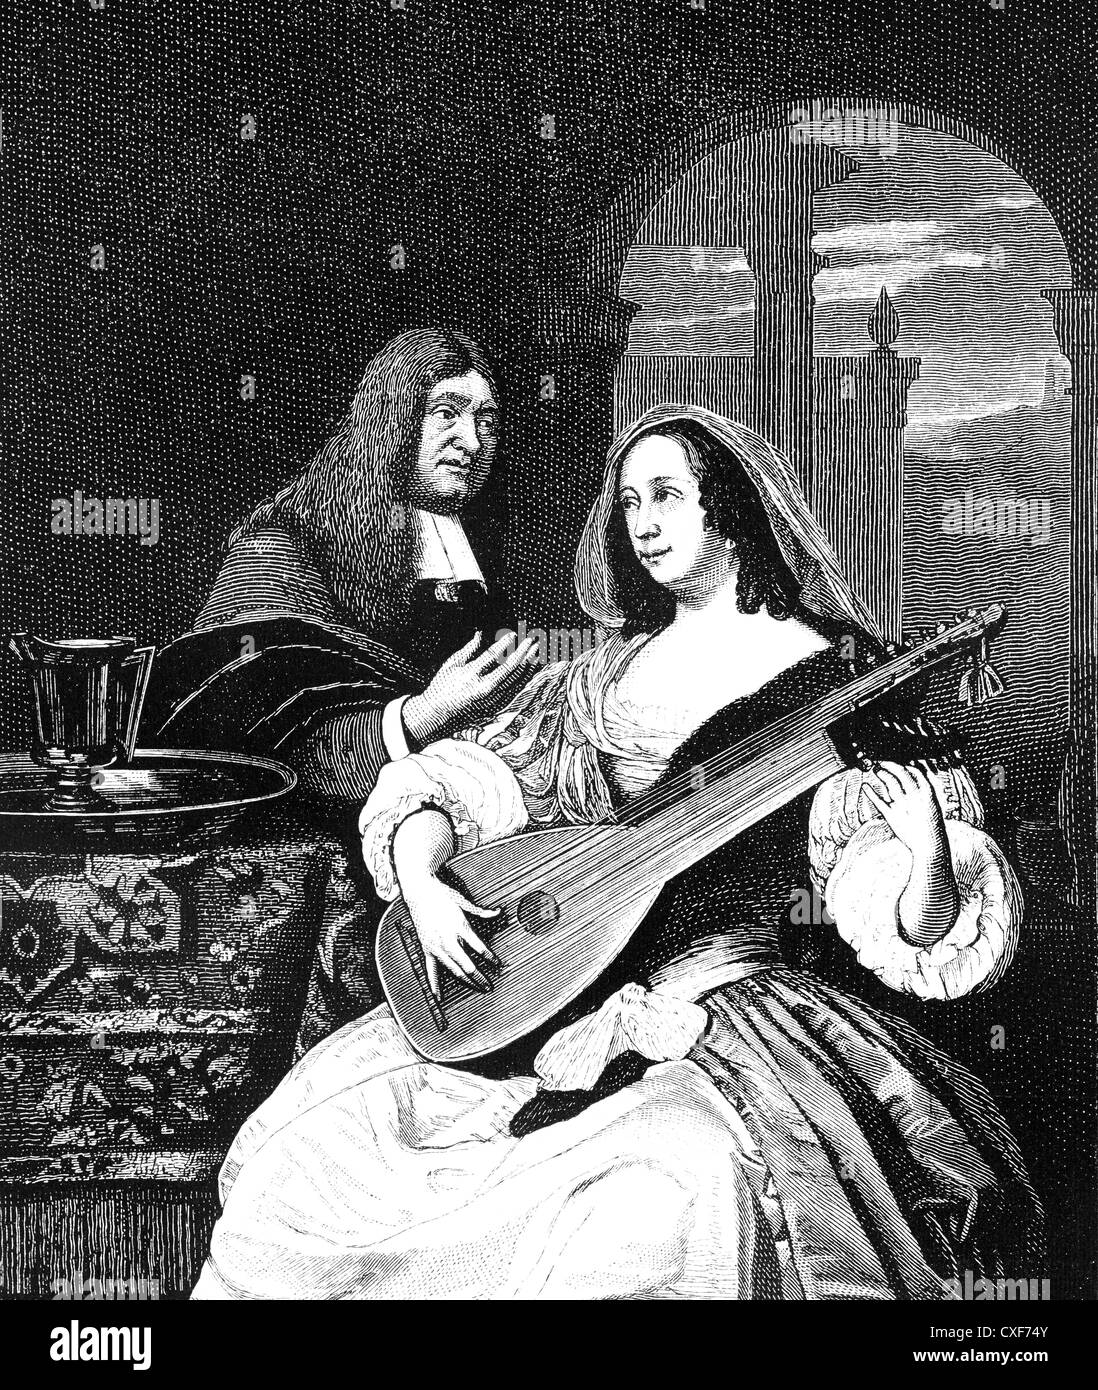 Venetian lute player after painting by Frans van Mieris, 1664, - Stock Image